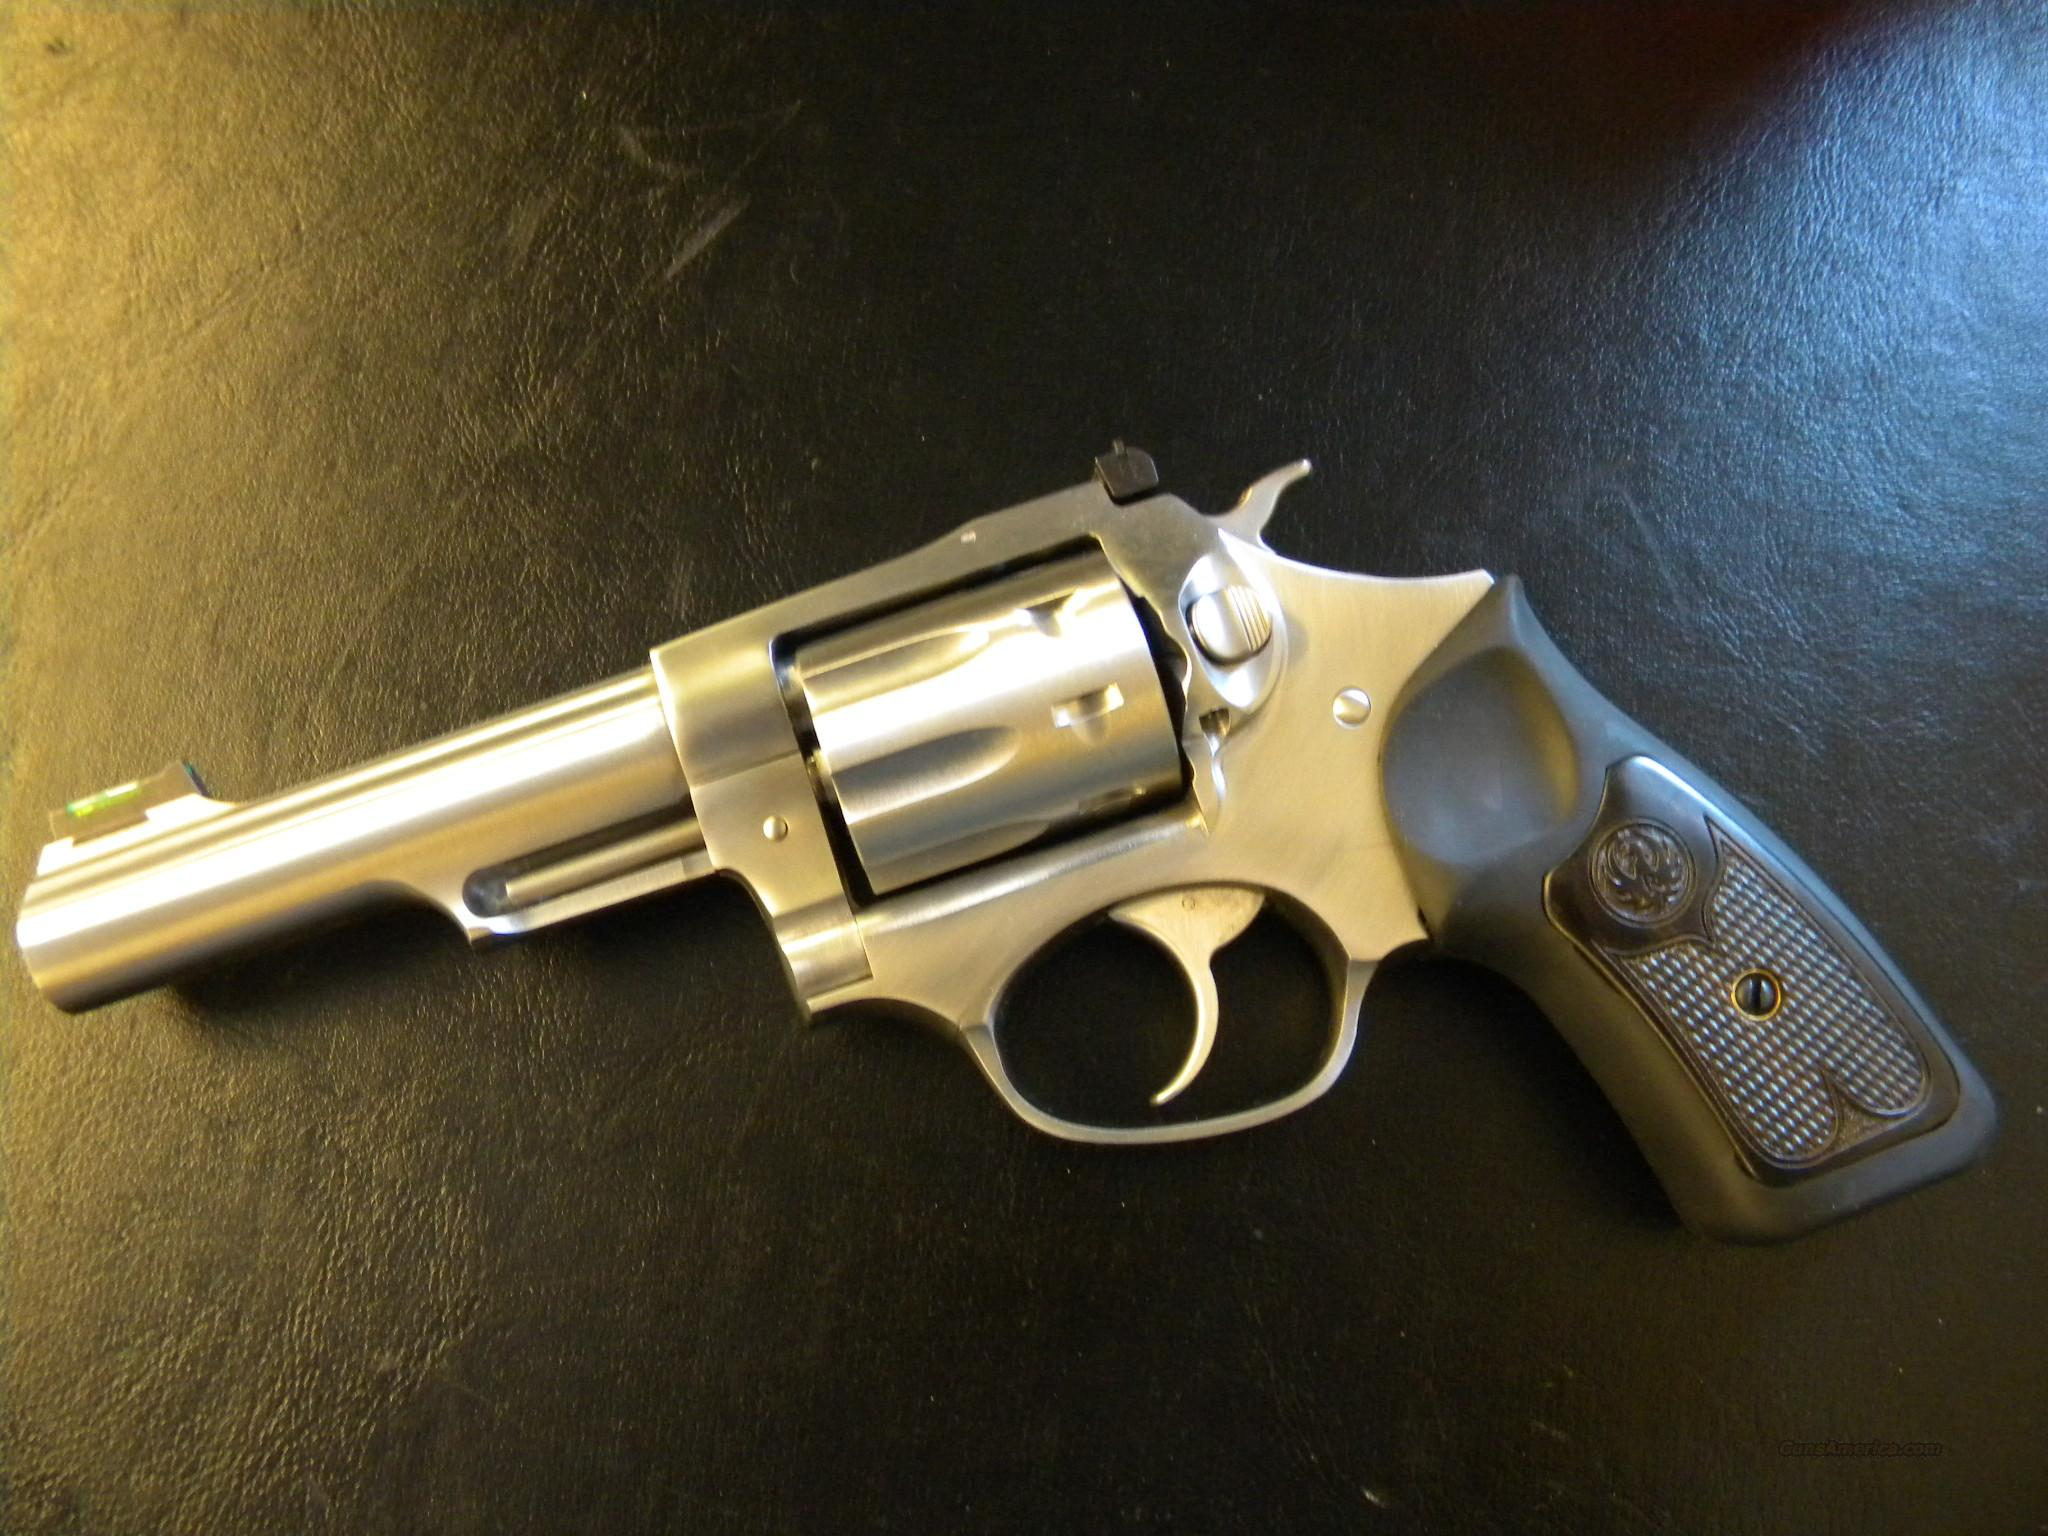 Ruger sp101 double action 22lr